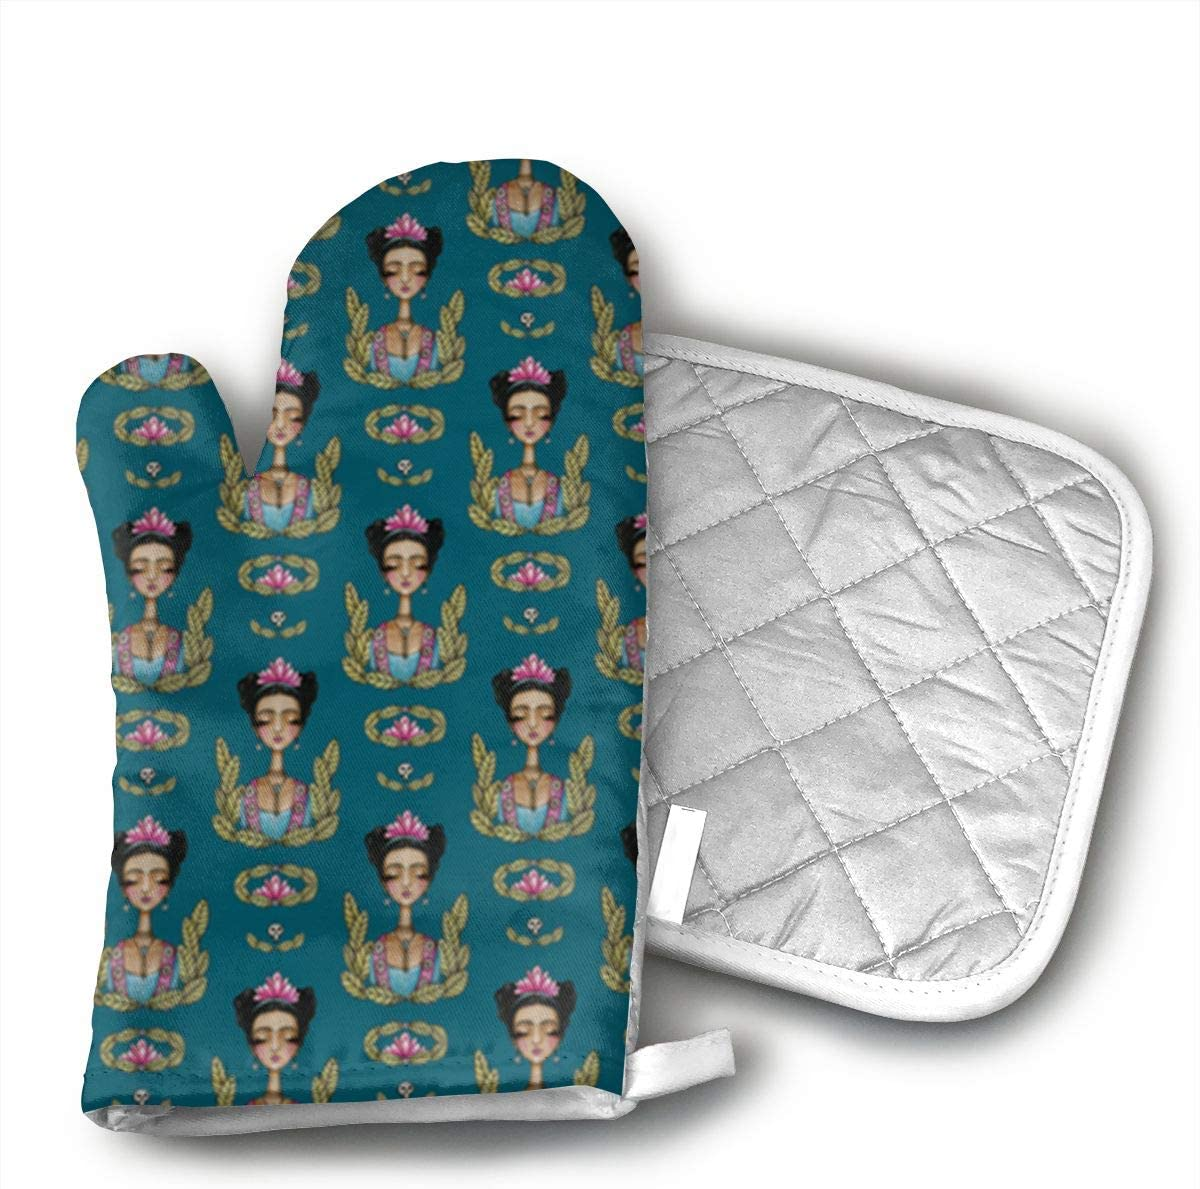 LAHGID Frida Kahlo Pattern Insulated Gloves Clay Pot Pads for Cooking, Barbecue with Other